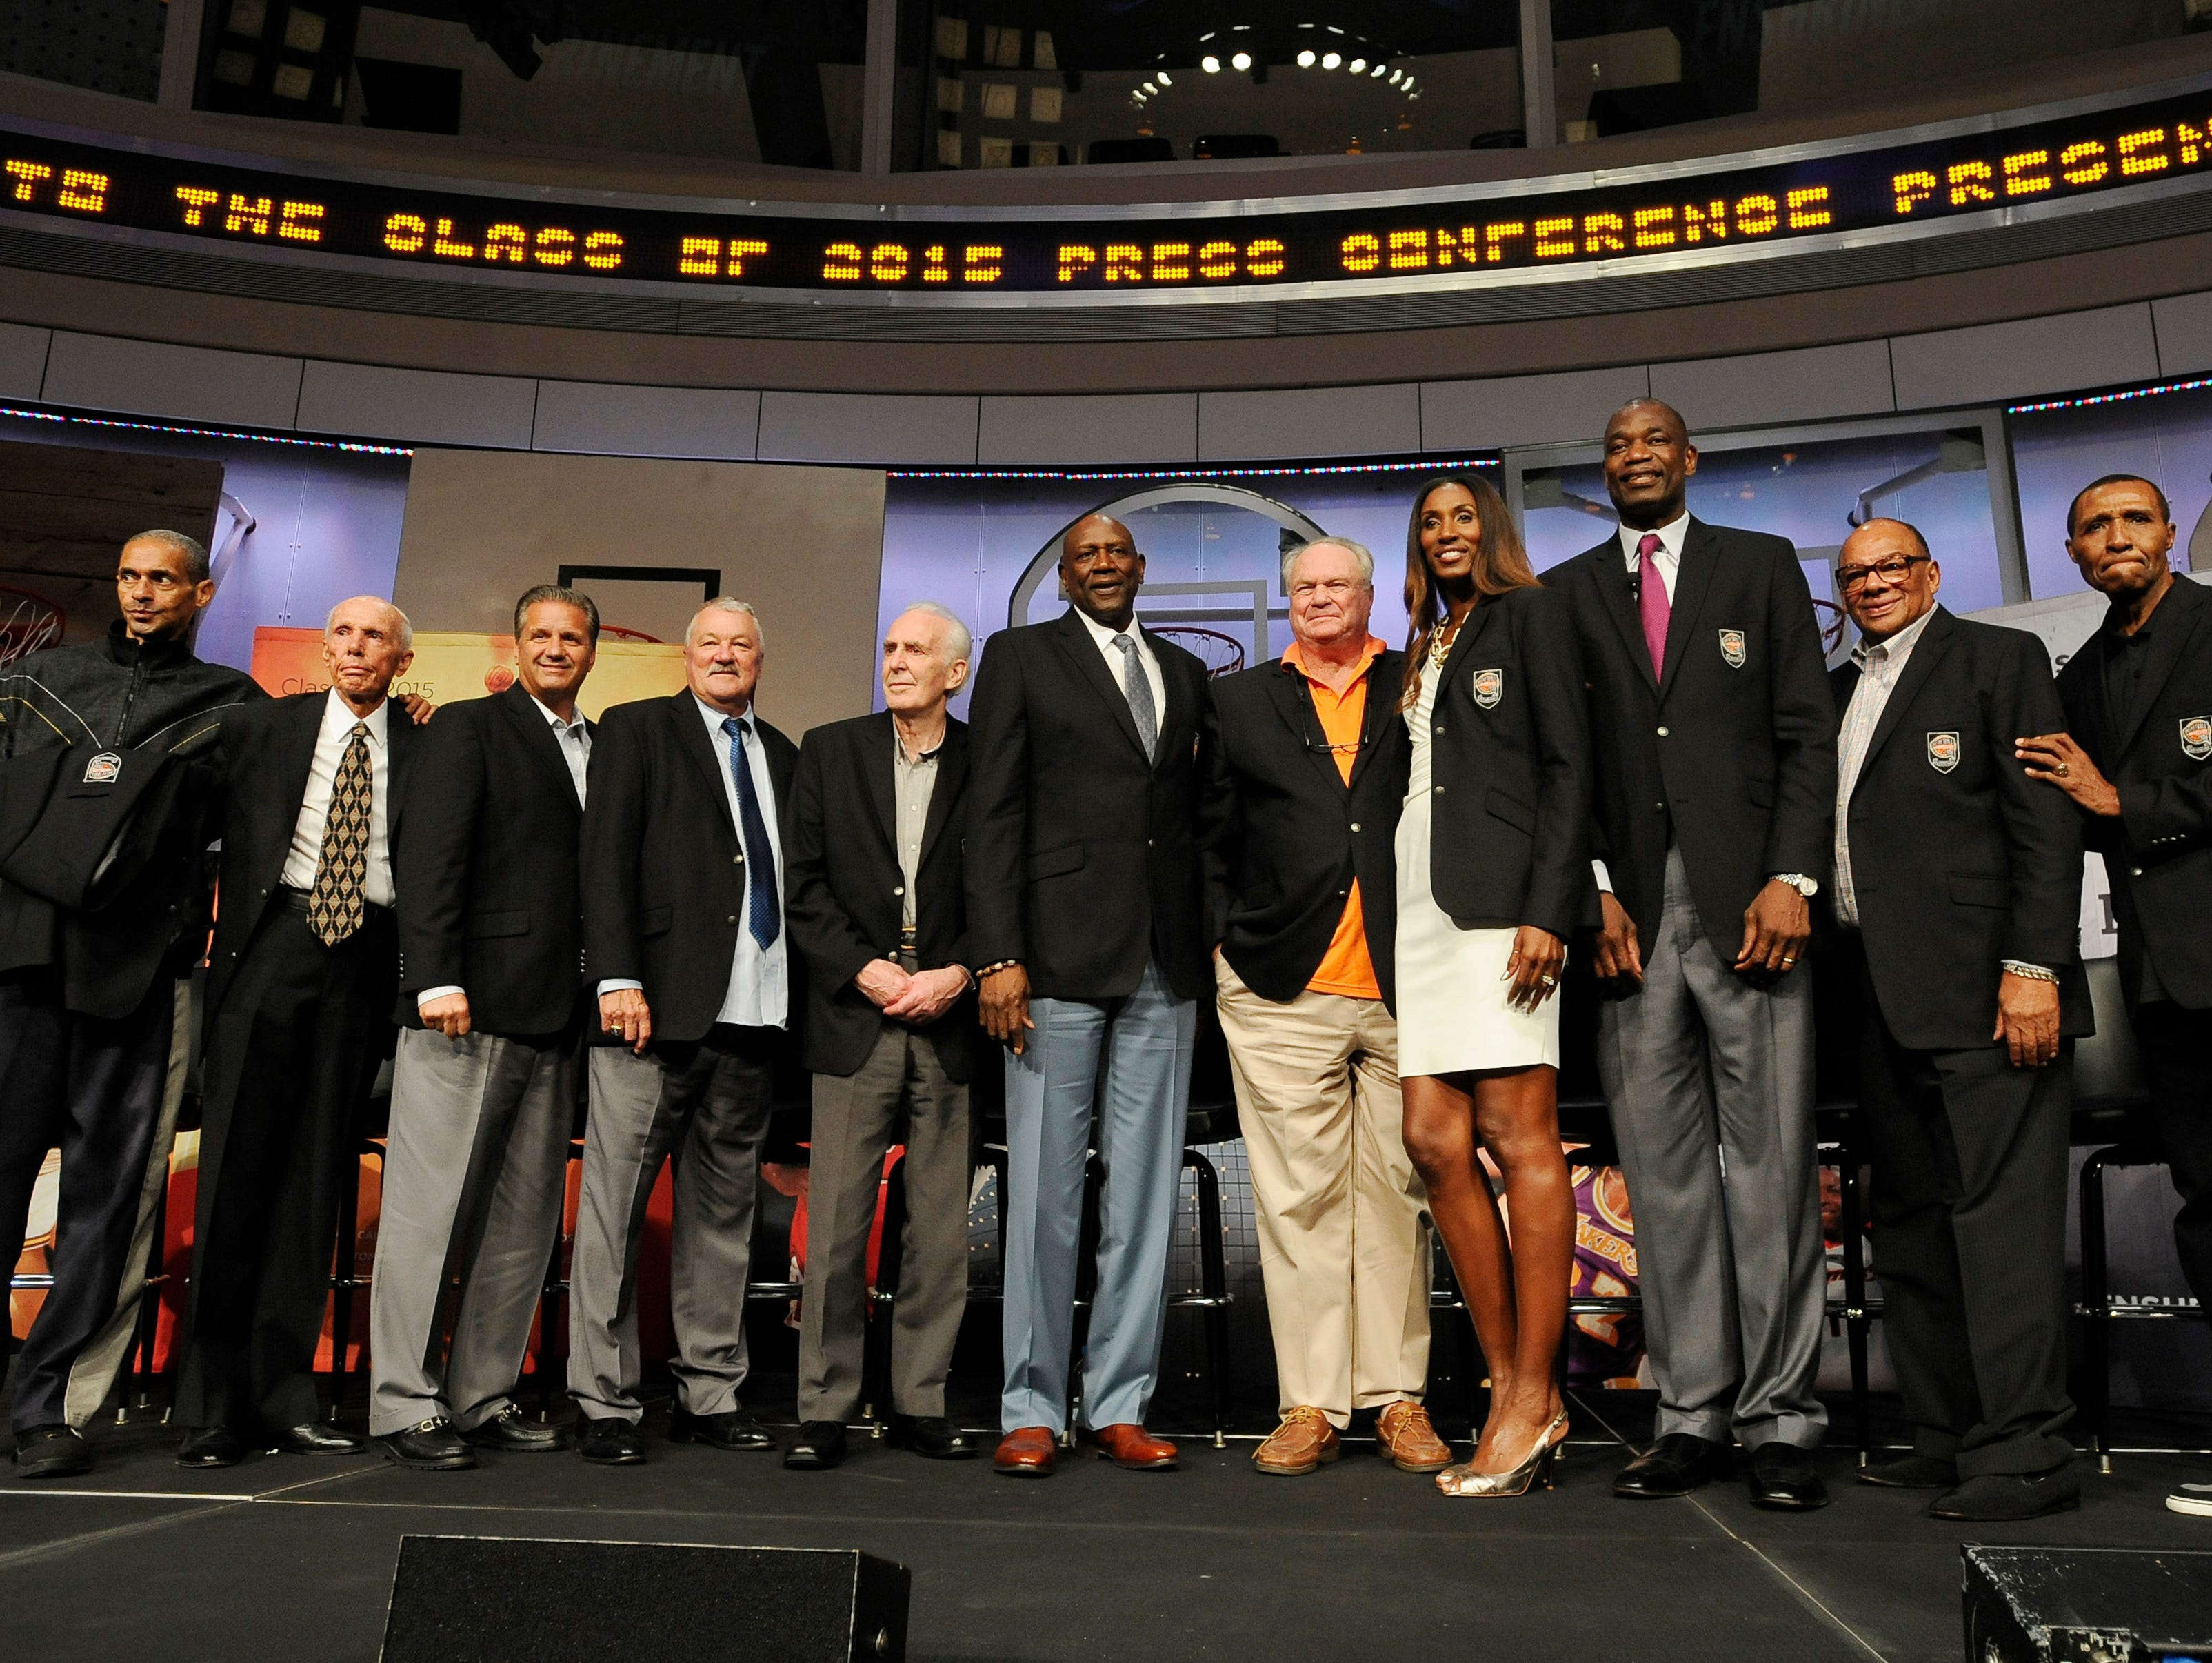 The 2015 class of inductees into the Basketball Hall of Fame, from the left, Alex Isaacs, accepting on behalf of his father John Isaacs, Dick Bavetta, John Calipari, Louis Dampier, Lindsay Gaze, Spencer Haywood, Tom Heinsohn, Lisa Leslie, Dikembe Mutombo, George Raveling, and Jo Jo White pose at a news conference at the Naismith Memorial Basketball Hall of Fame Thursday, Sept. 10, 2015, in Springfield, Mass.